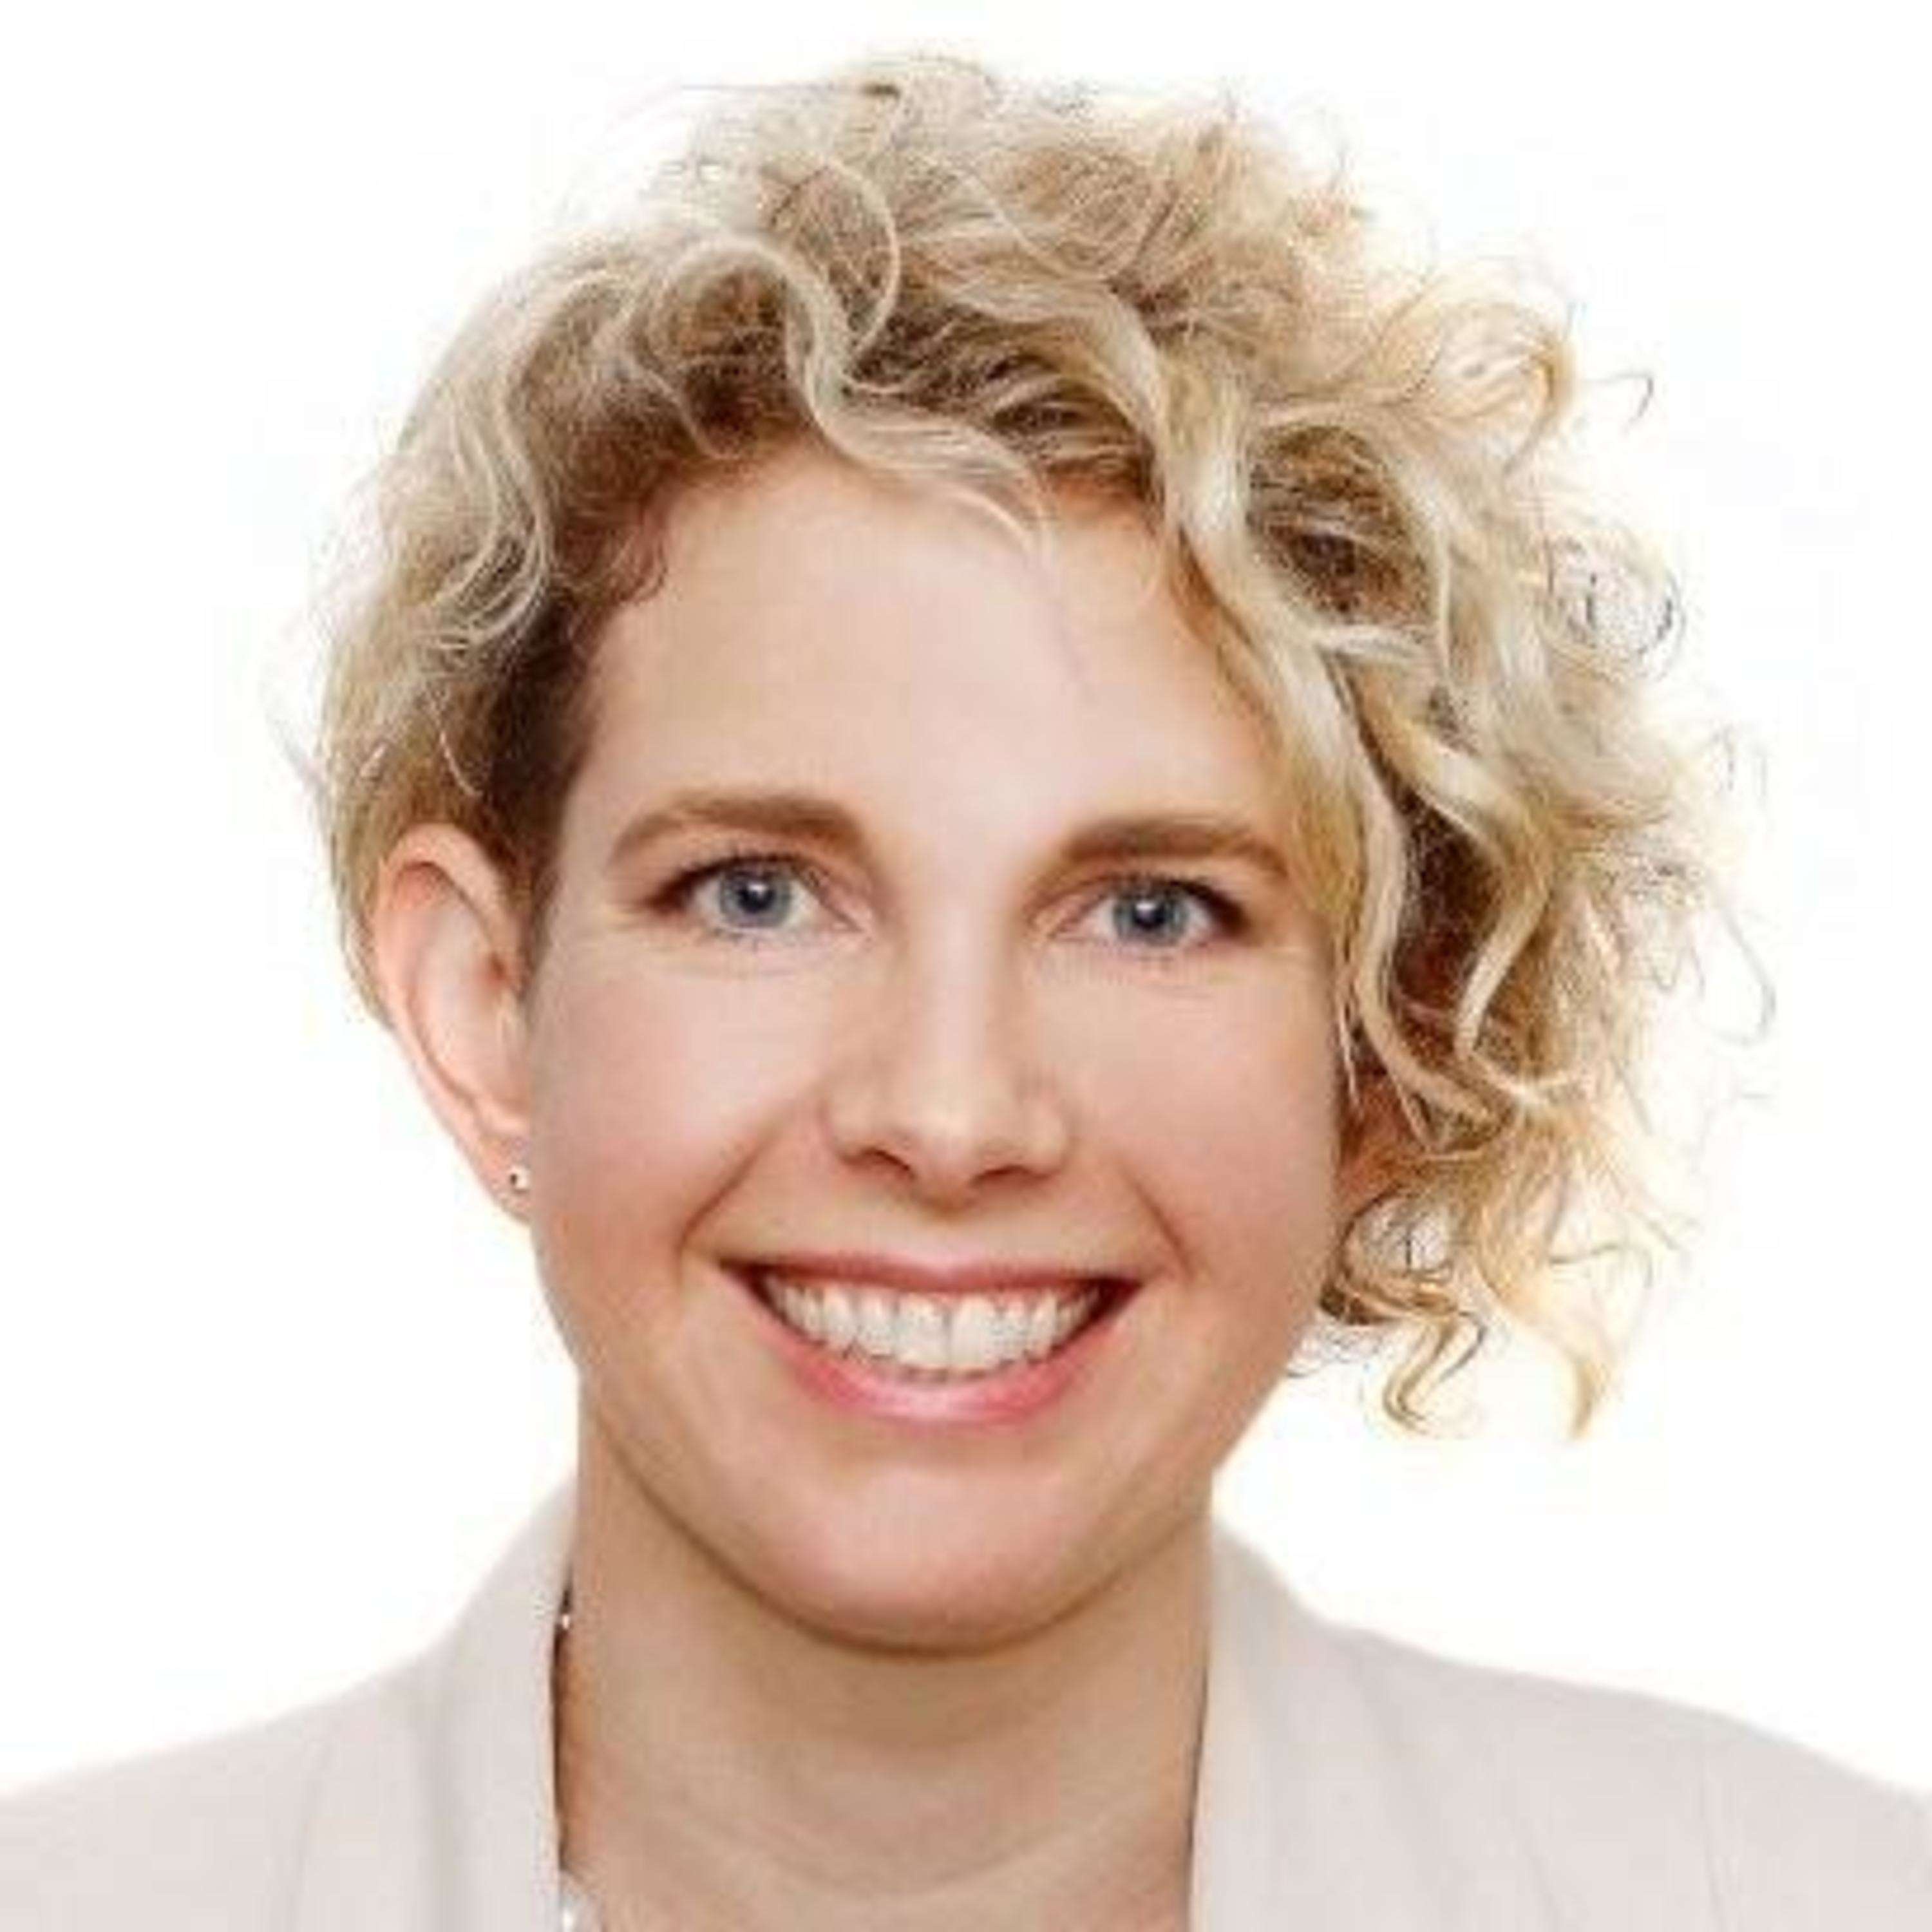 5: Fixed Vs Growth Mindsets & Psychologically Safe Workplaces - with Naomi Armitage